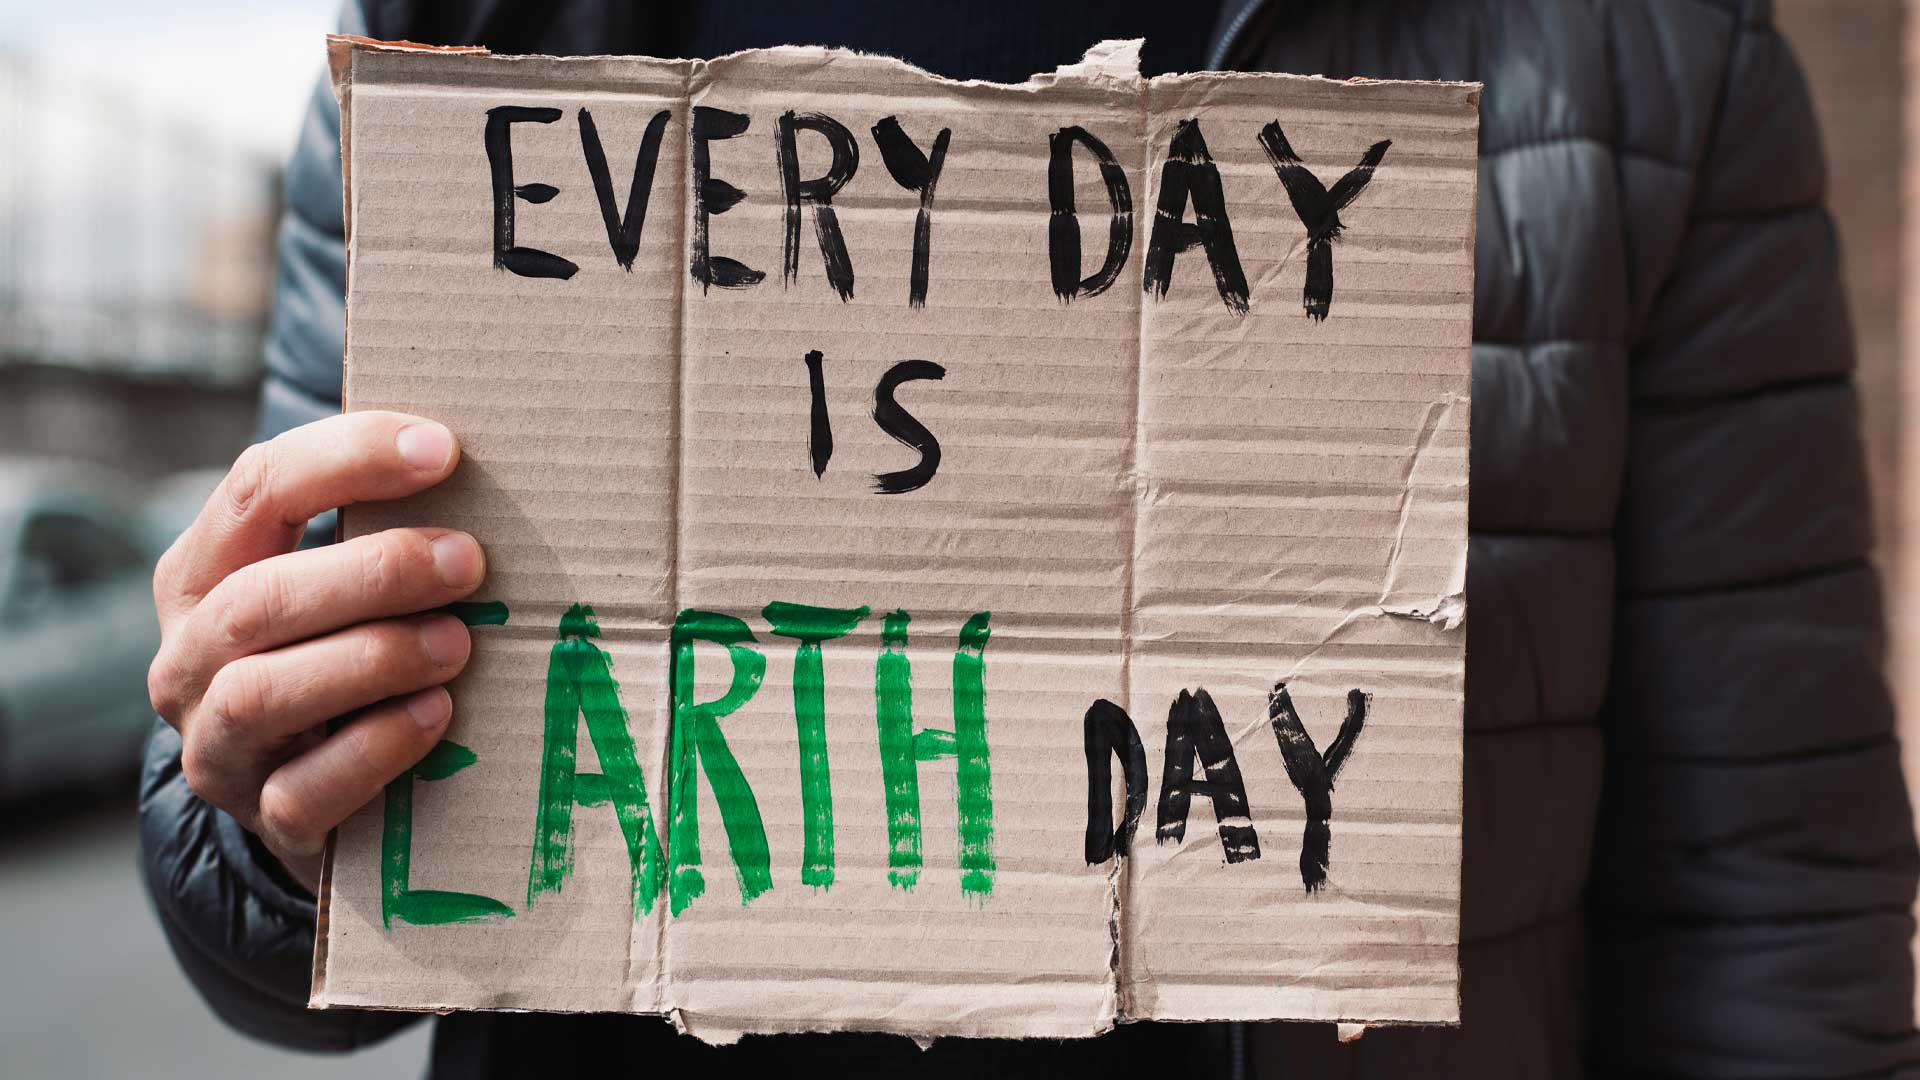 Zukunftsthemen: Nahaufnahme eines Teilnehmers von Fridays for Future mit einem Transparent auf dem steht: Every day is earth day